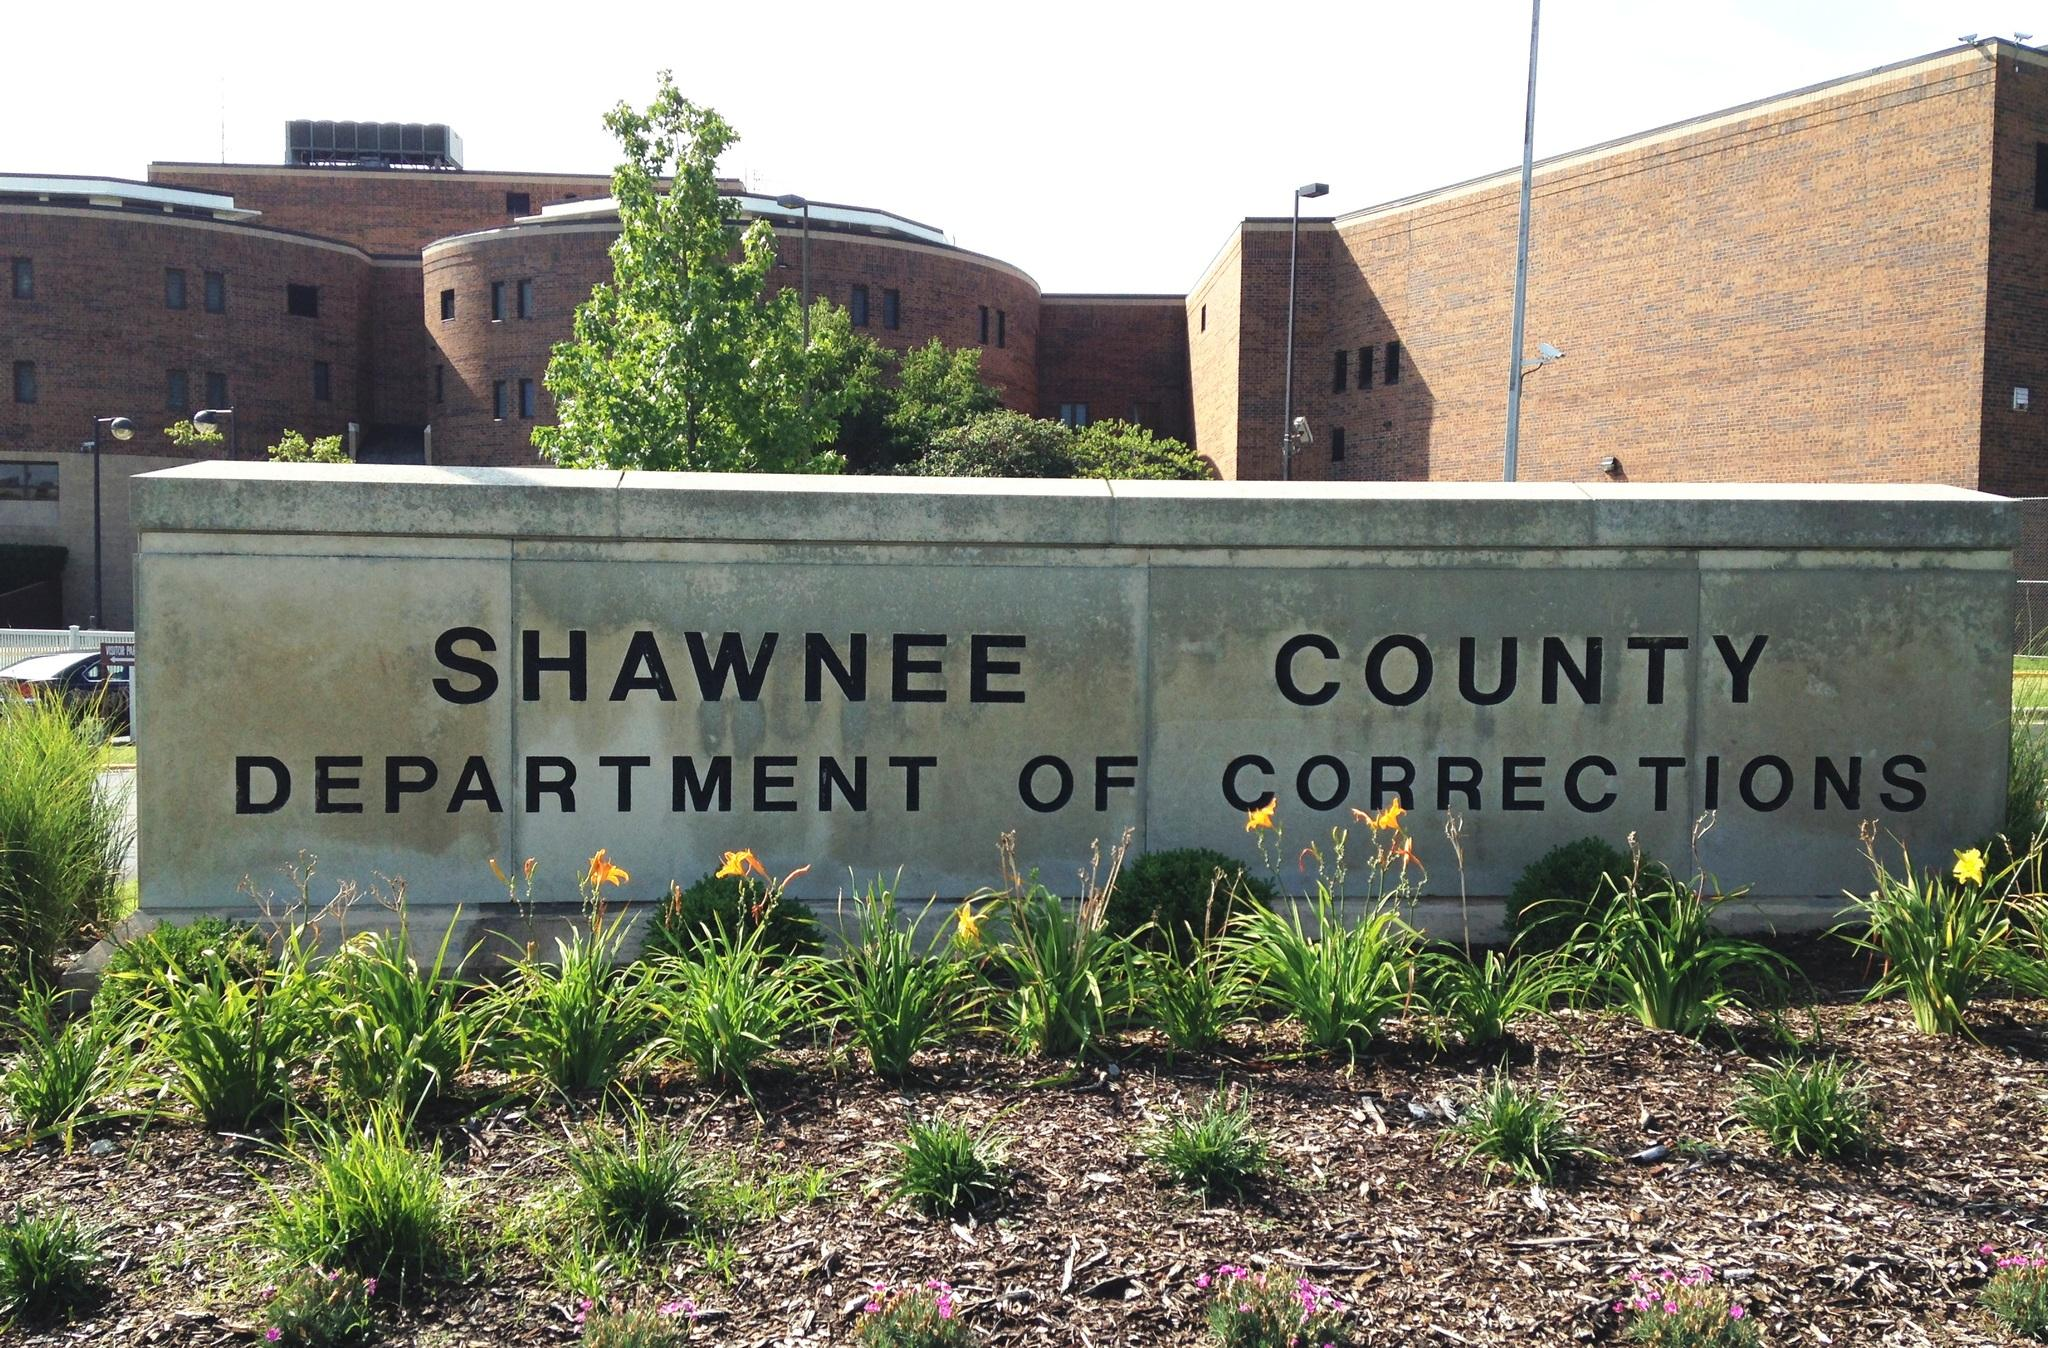 Shawnee County Dpt Corrections